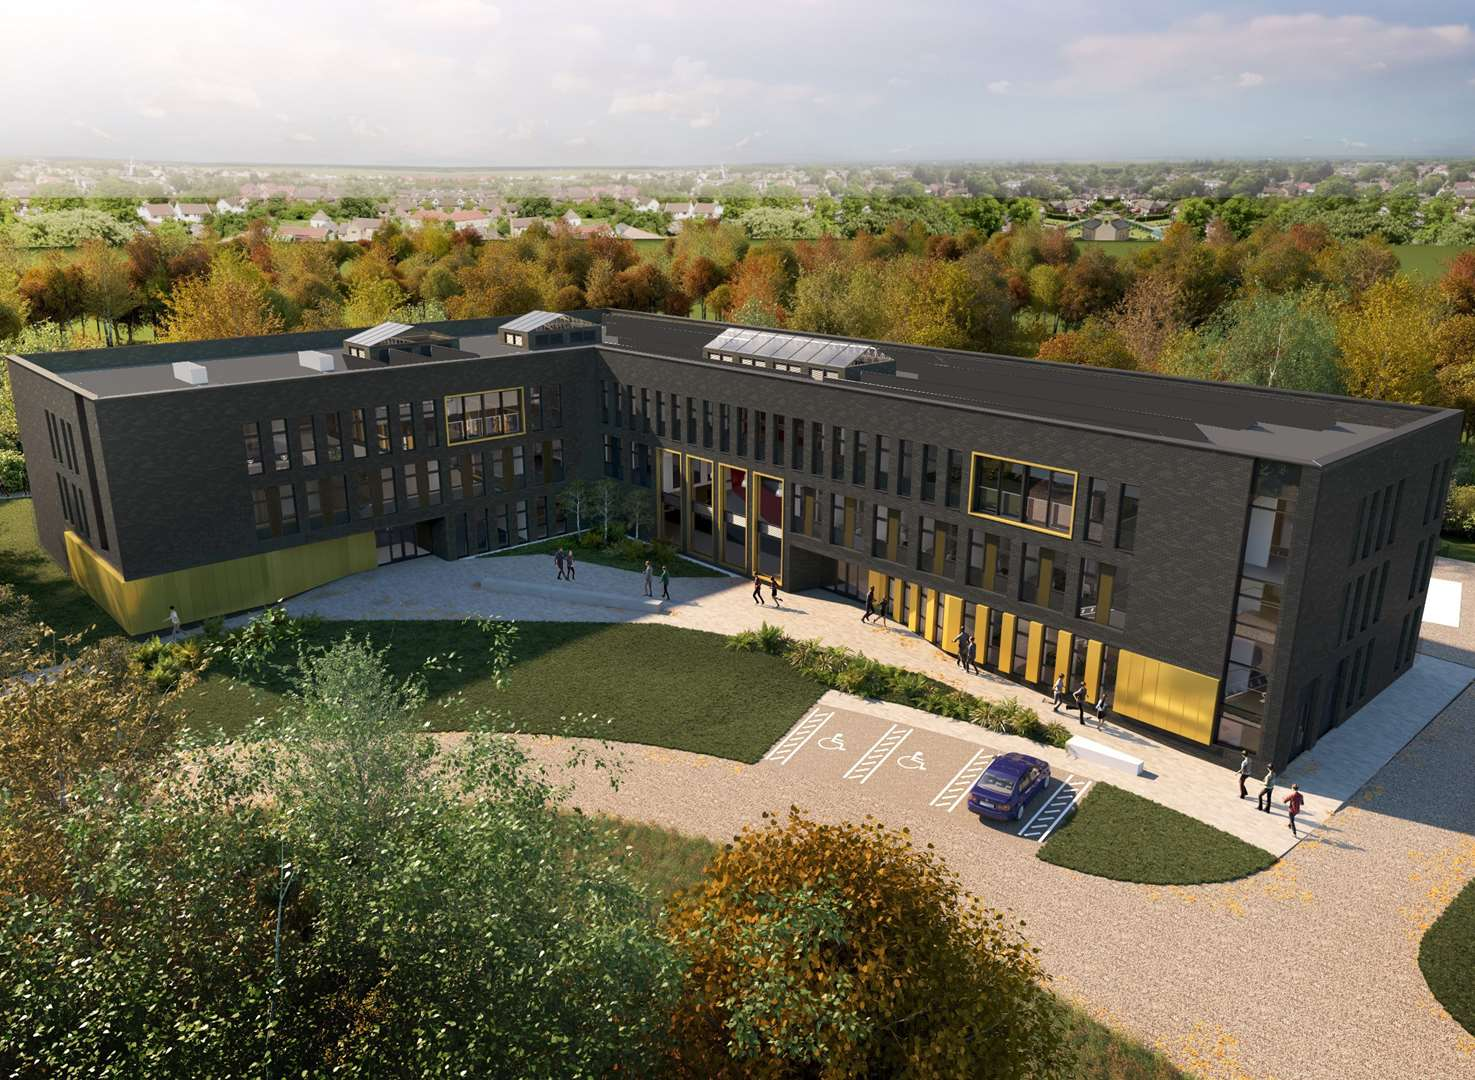 Construction to start on £13.4m uni building